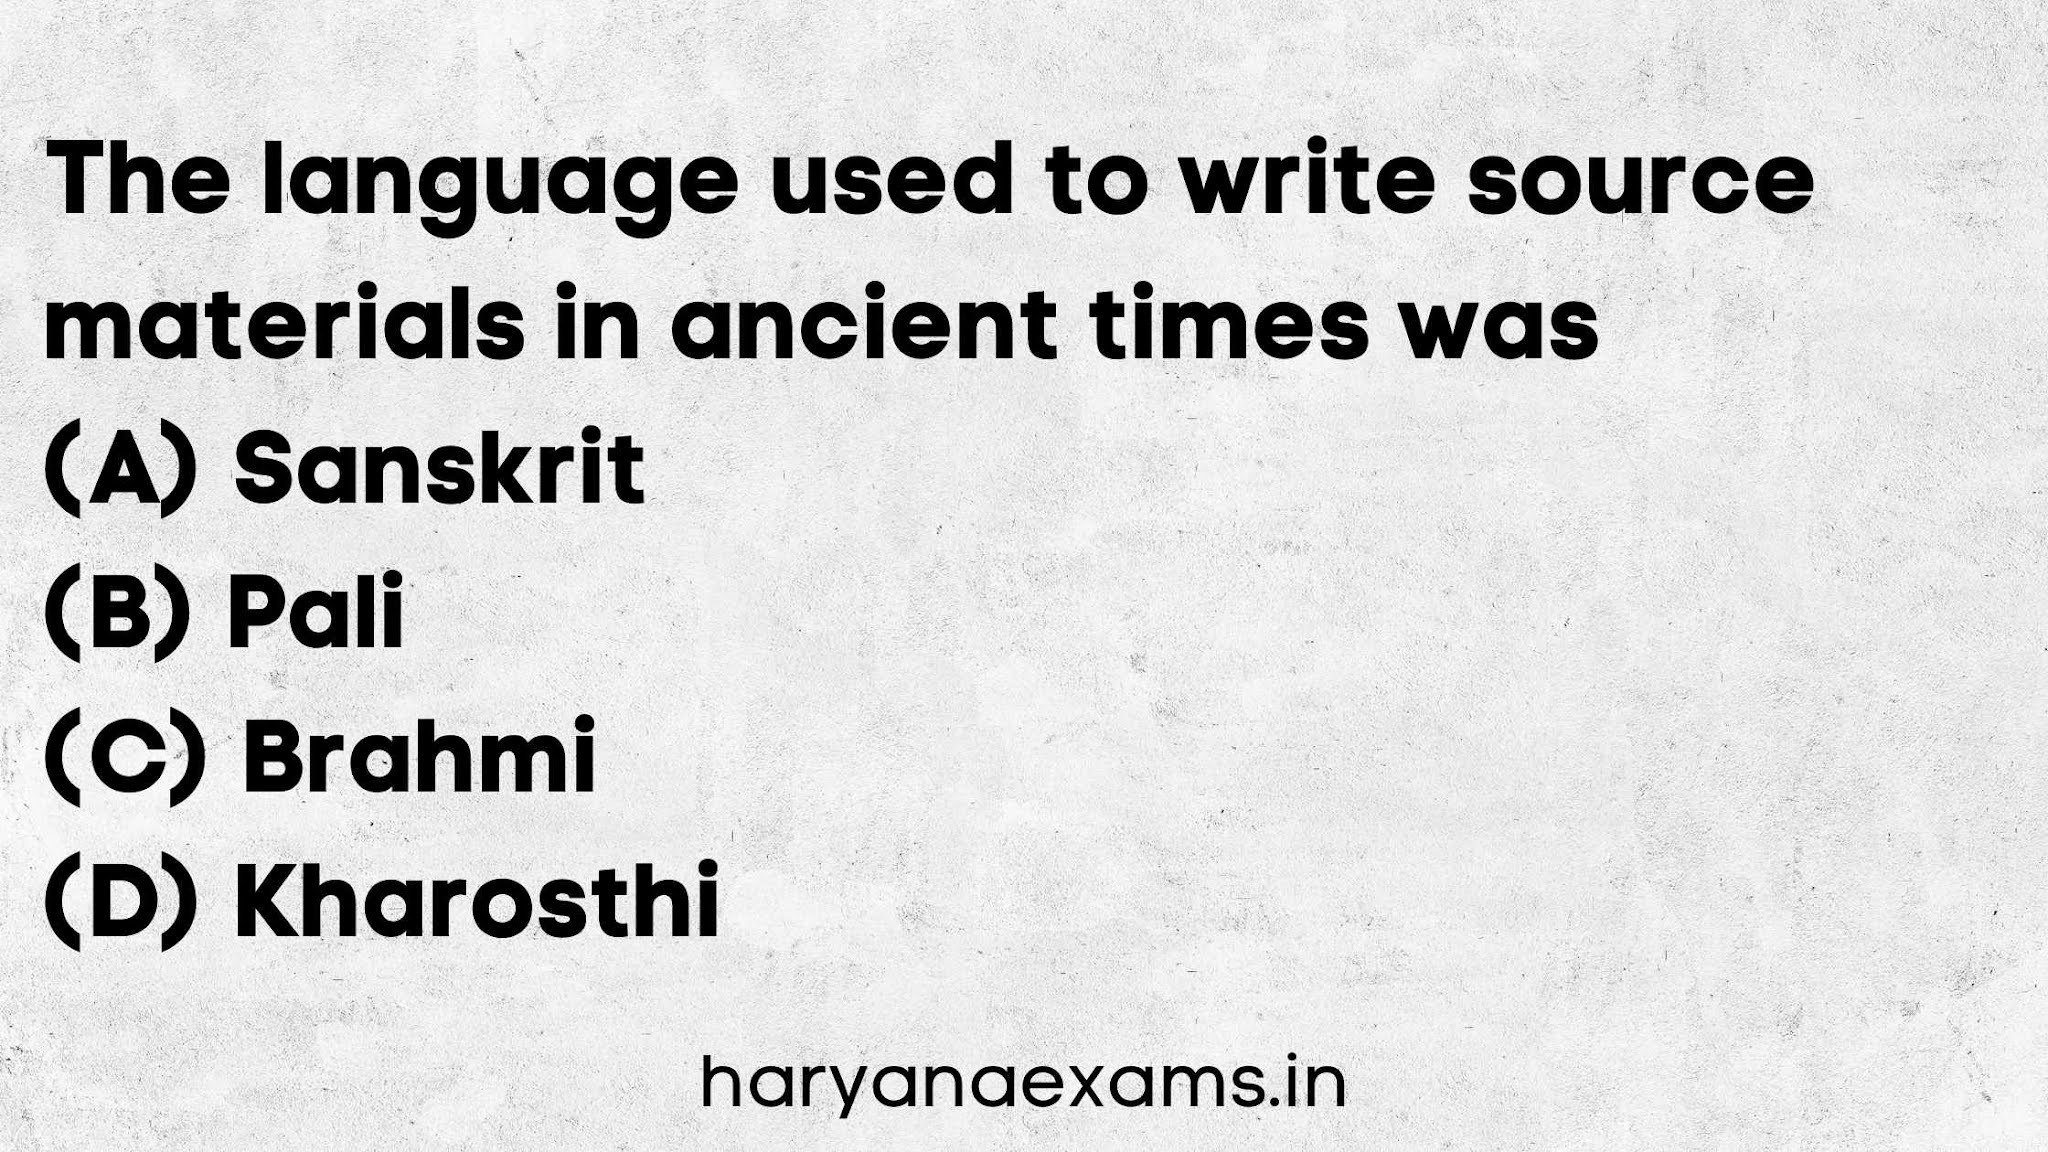 The language used to write source materials in ancient times was   (A) Sanskrit   (B) Pali   (C) Brahmi   (D) Kharosthi